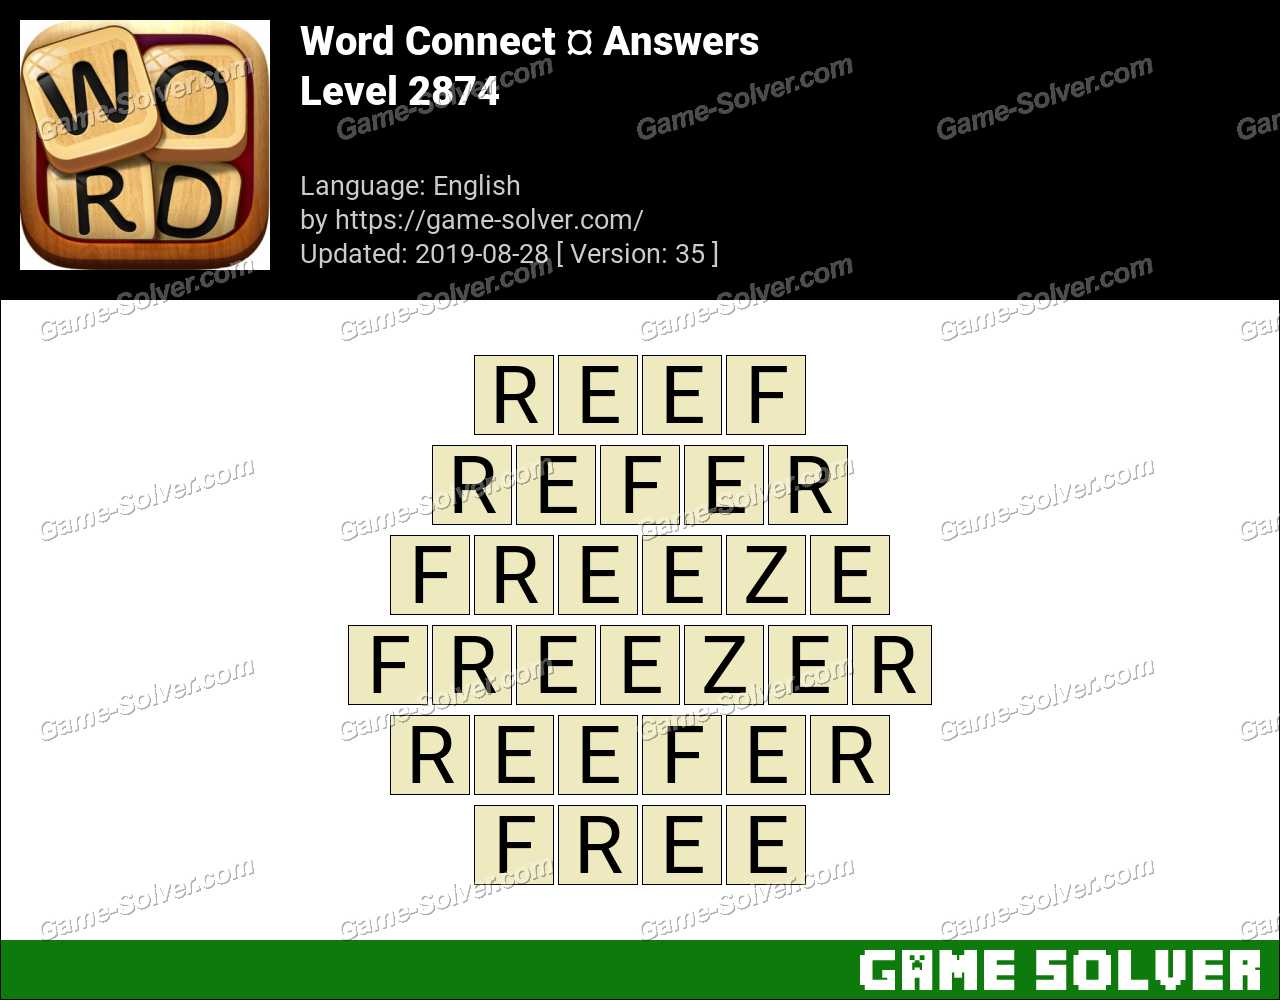 Word Connect Level 2874 Answers